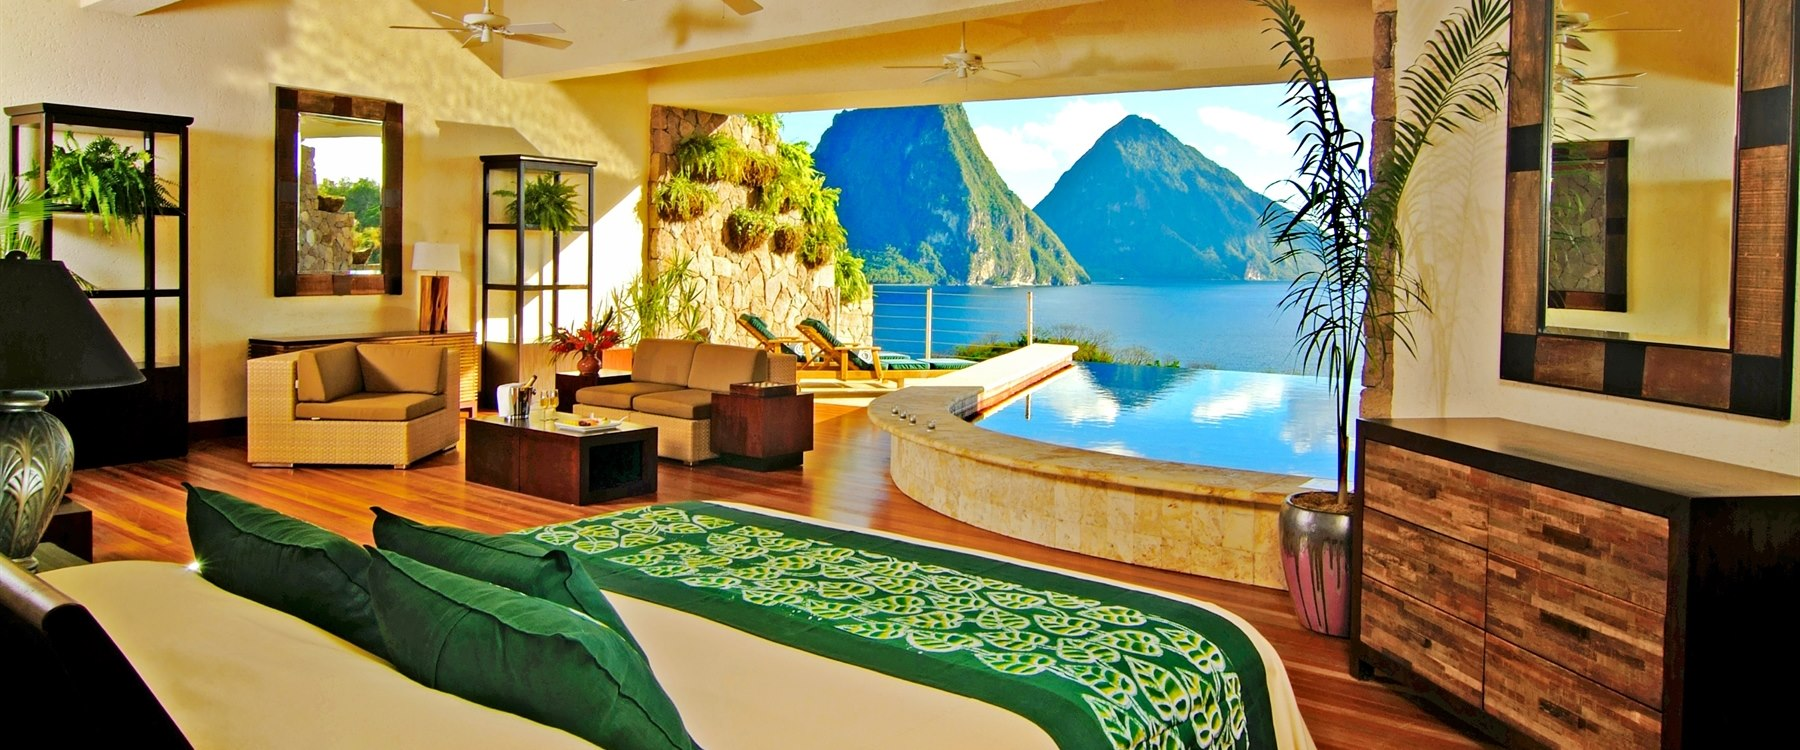 private infinity pool overlooking the ocean at jade mountain st lucia